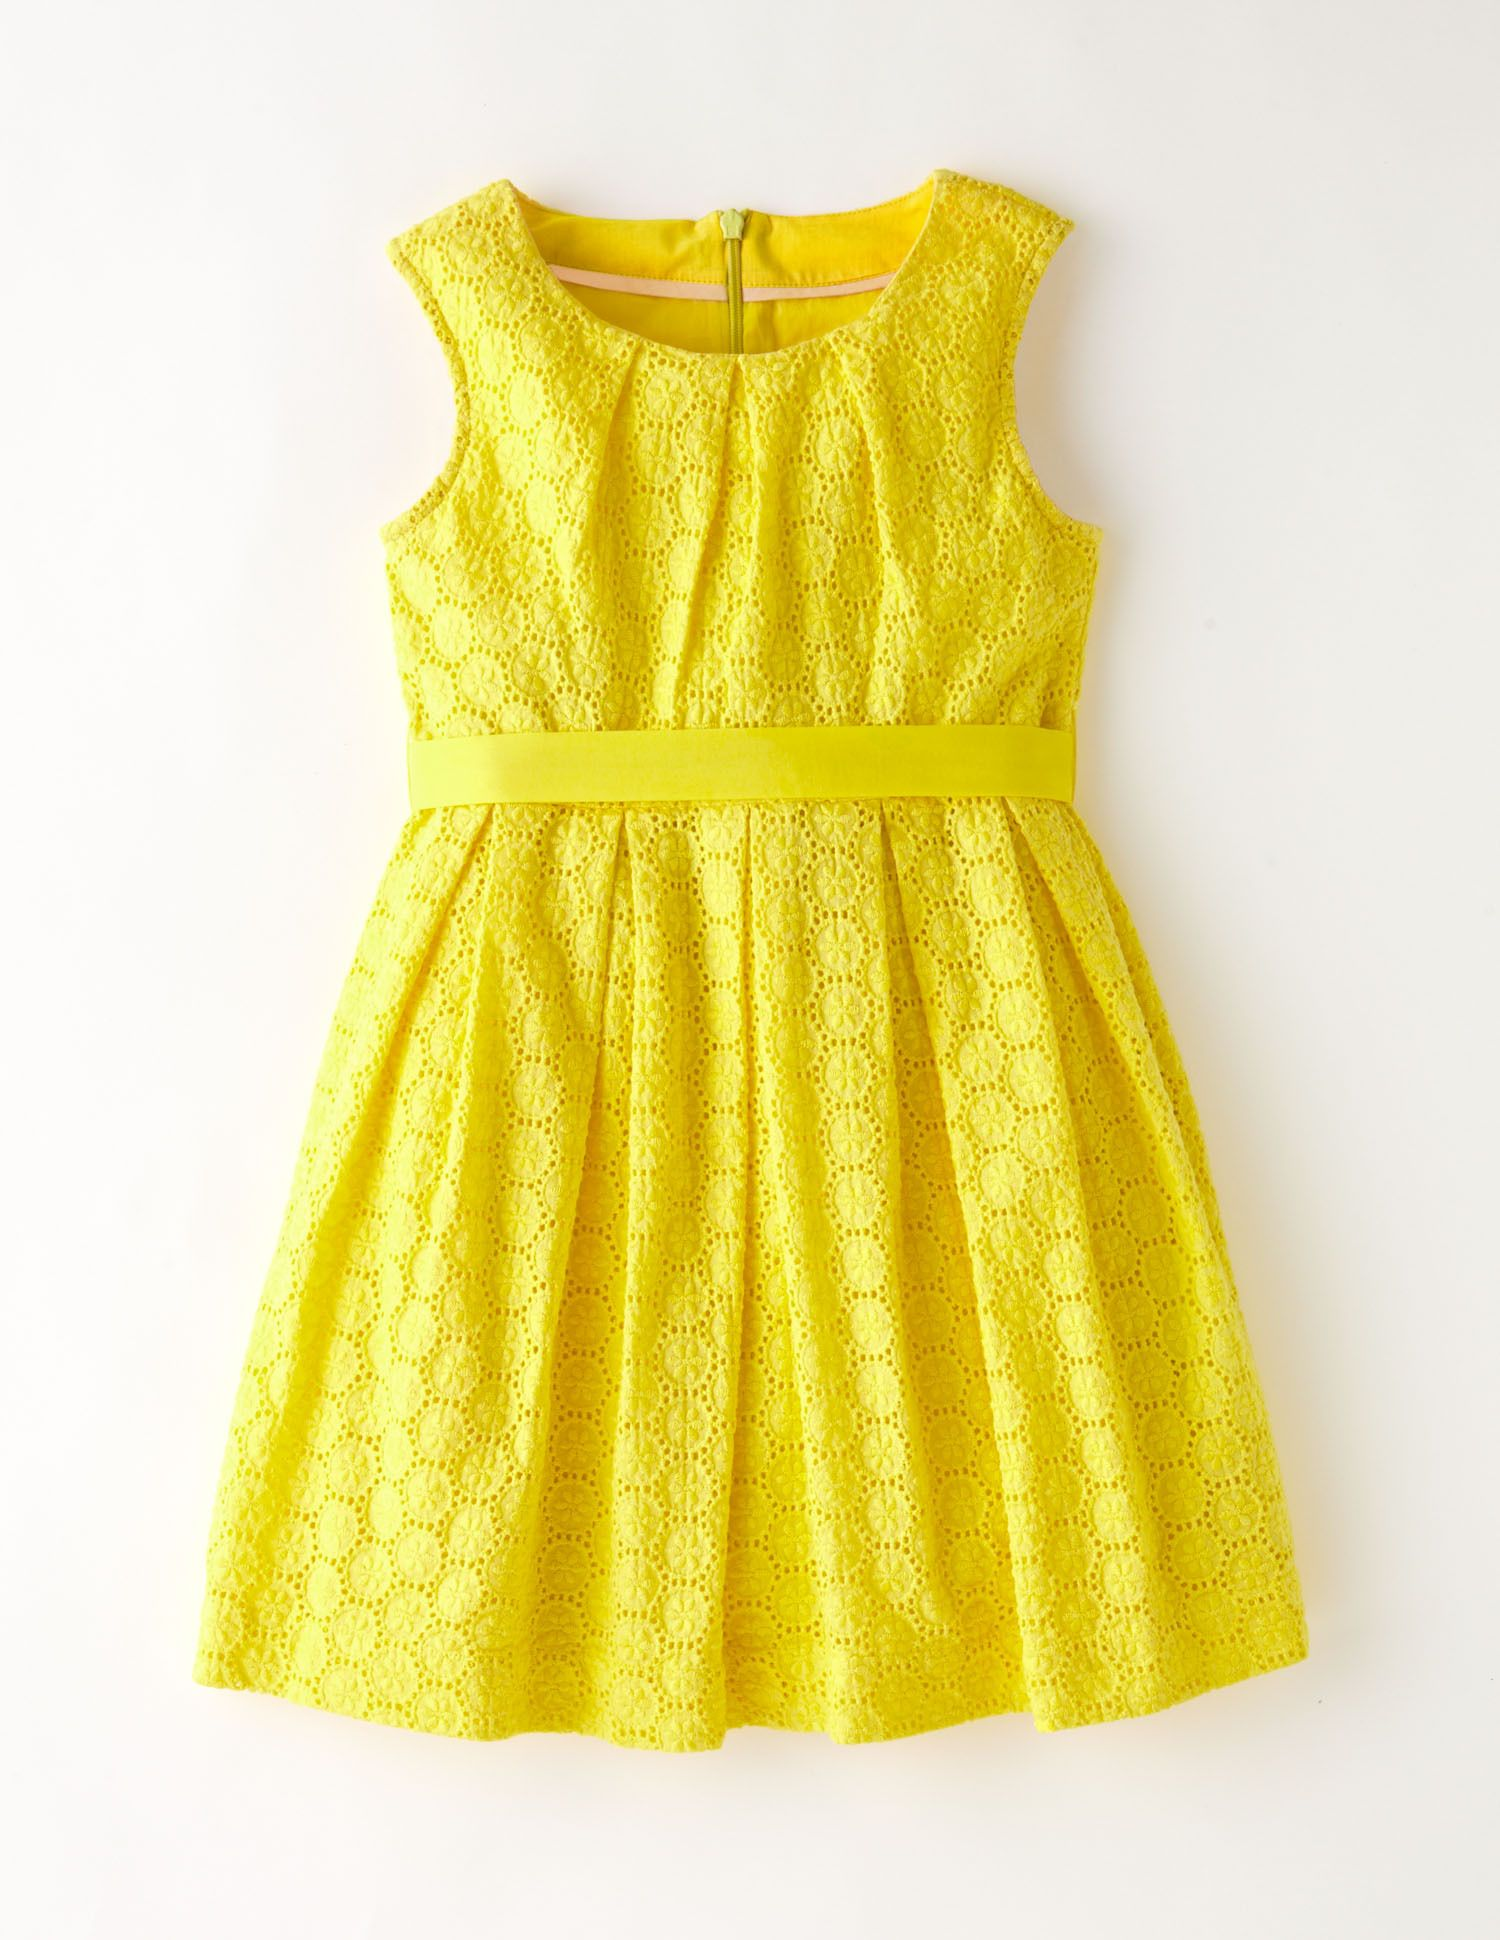 Dress Your Little Ray Of Sunshine In A Sunny Yellow Get An